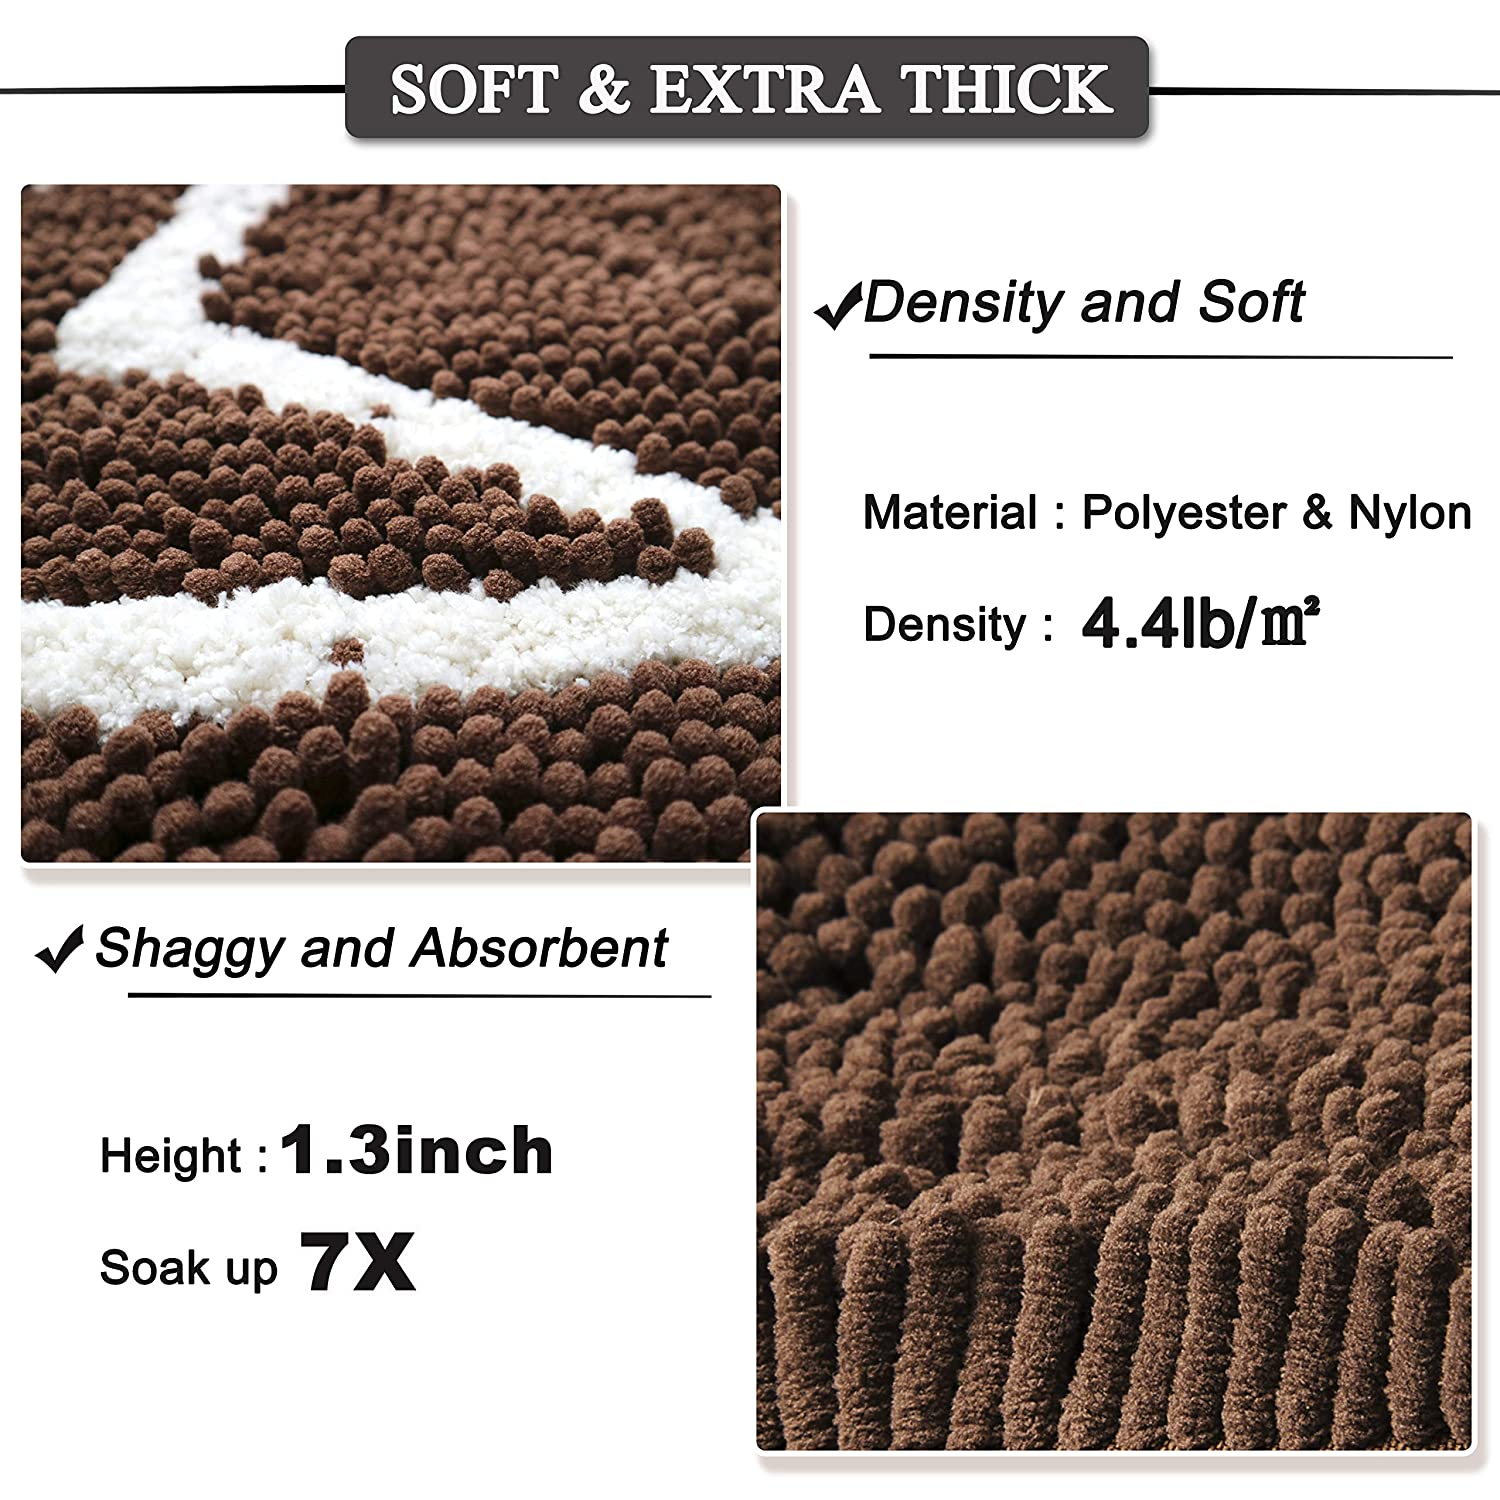 Water Absorbent Non Slip Chenille Bath Rugs Prevent Mud Dirt Bath Mat for Bathroom Rugs Machine Washable Quick Drying Plush Carpet Mats for Kitchen Bedroom Entry Pet 1.3 Inch Indoor Dog Door Mat